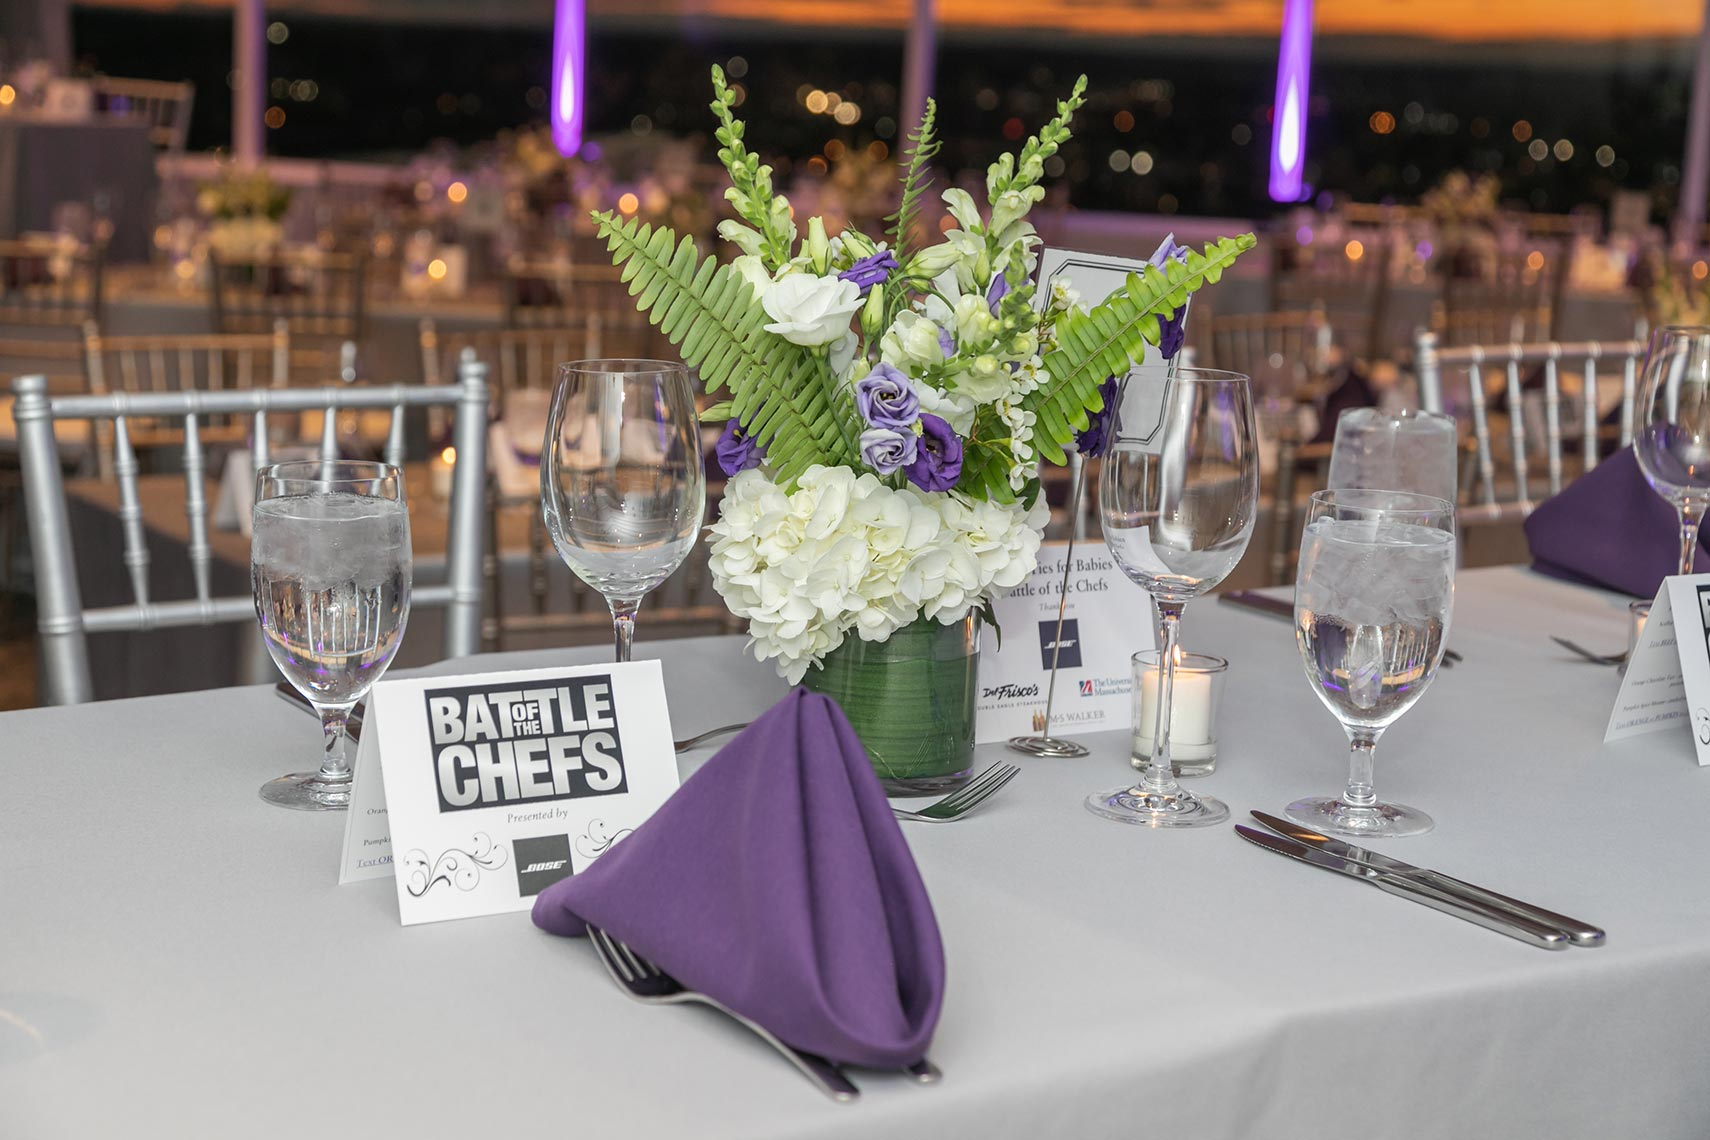 004-Table setting with event signs for the March of Dimes Black Ties for Babies Gala